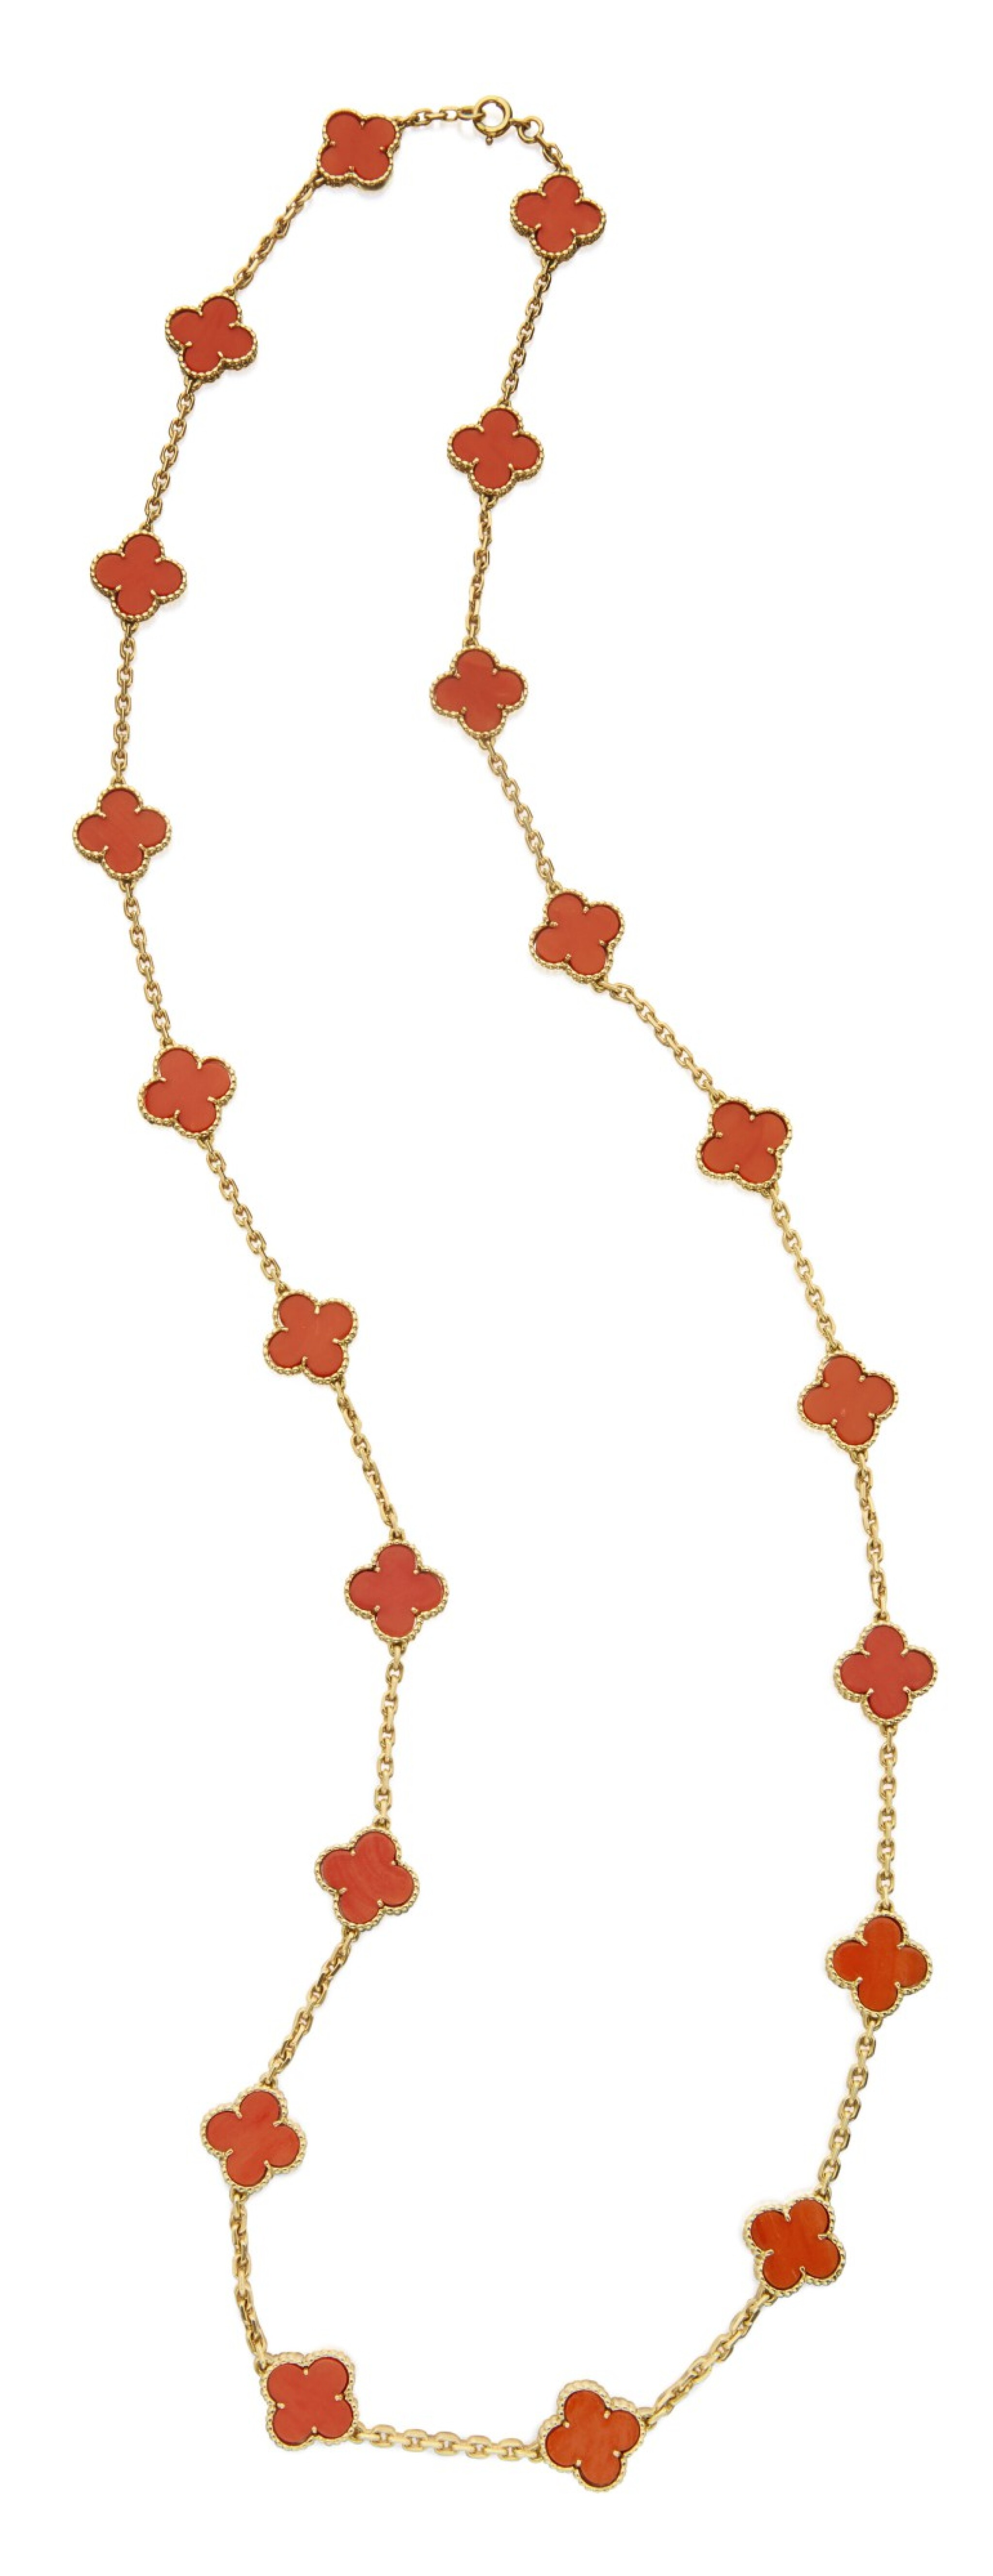 View 1 of Lot 342. GOLD AND CORAL 'VINTAGE ALHAMBRA' NECKLACE, VAN CLEEF & ARPELS, FRANCE .